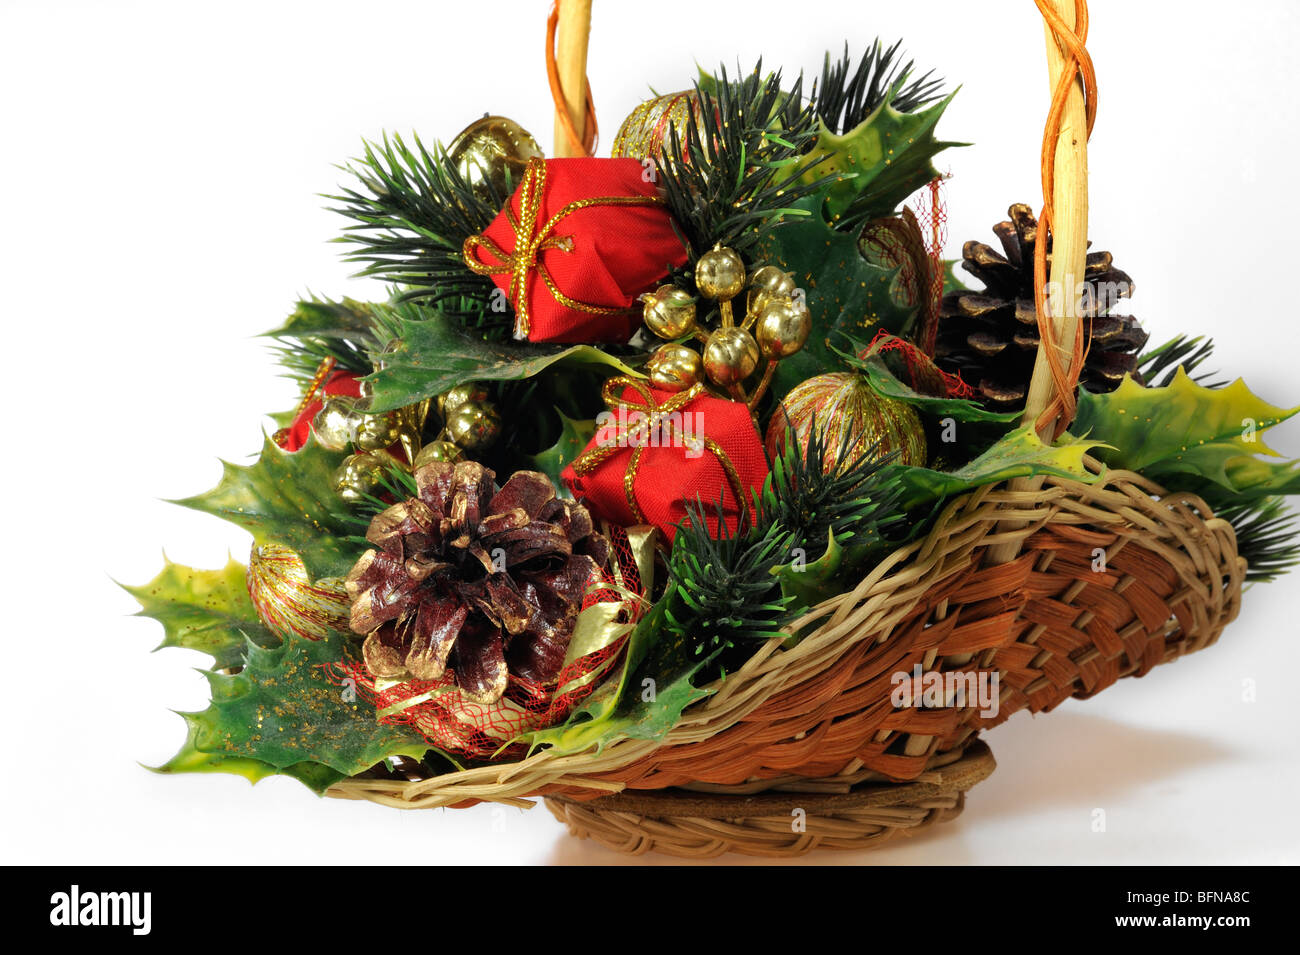 Basket with Christmas ornaments and decorations - Stock Image